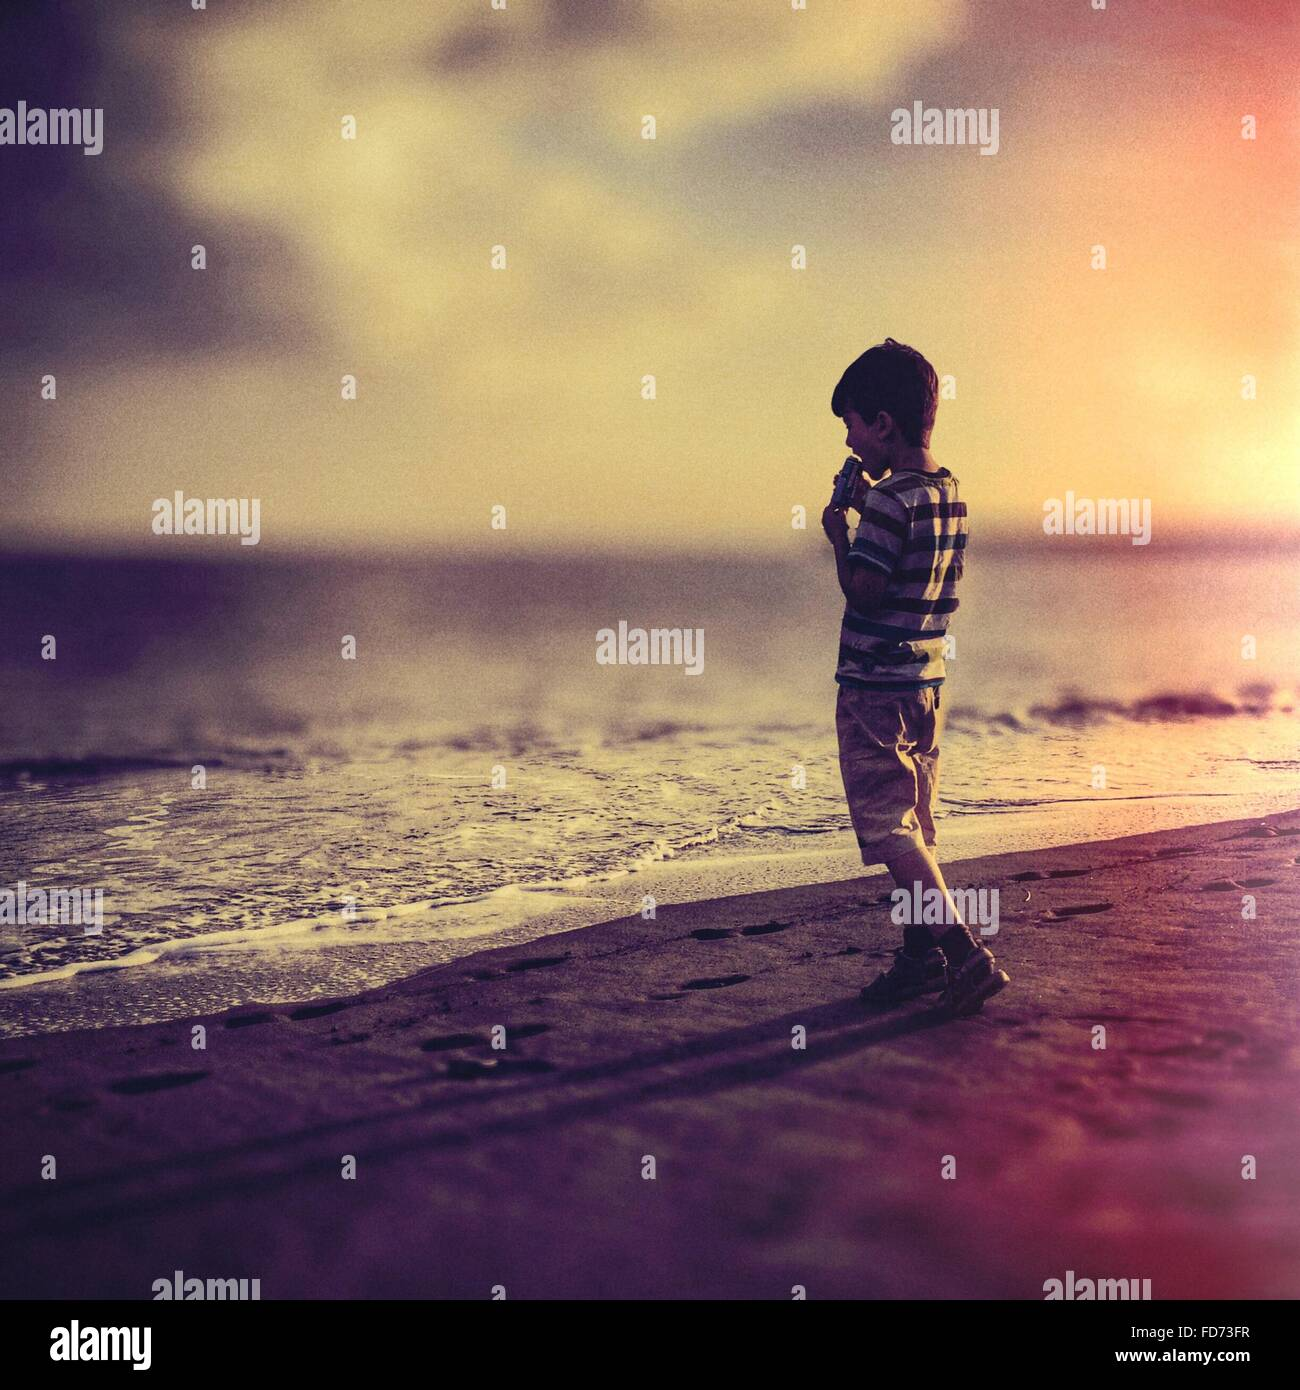 Boy Having Ice Cream At Beach During Sunset - Stock Image